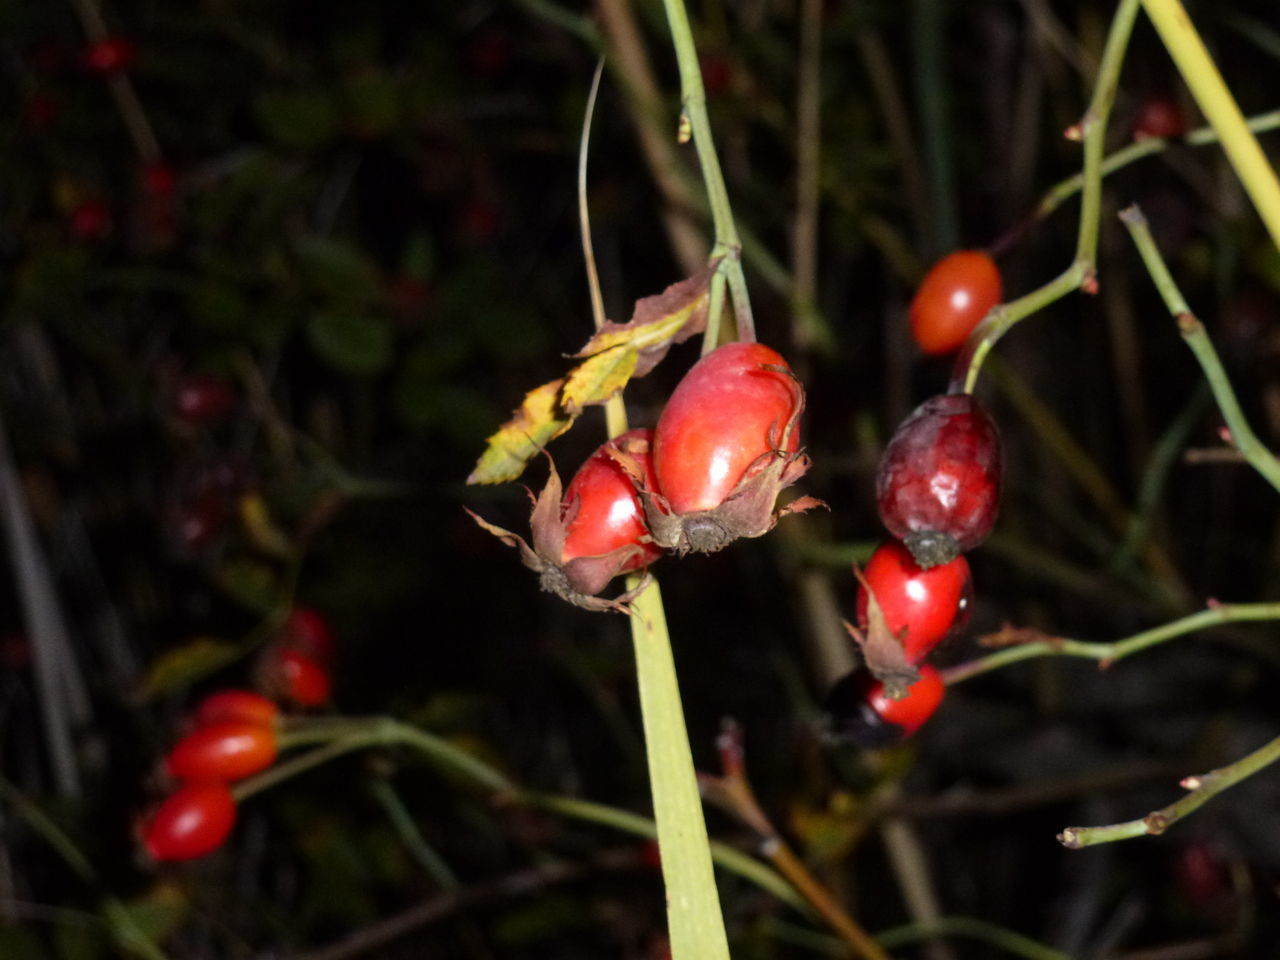 red, nature, growth, food and drink, rose hip, beauty in nature, growing, fruit, plant, outdoors, freshness, close-up, no people, food, day